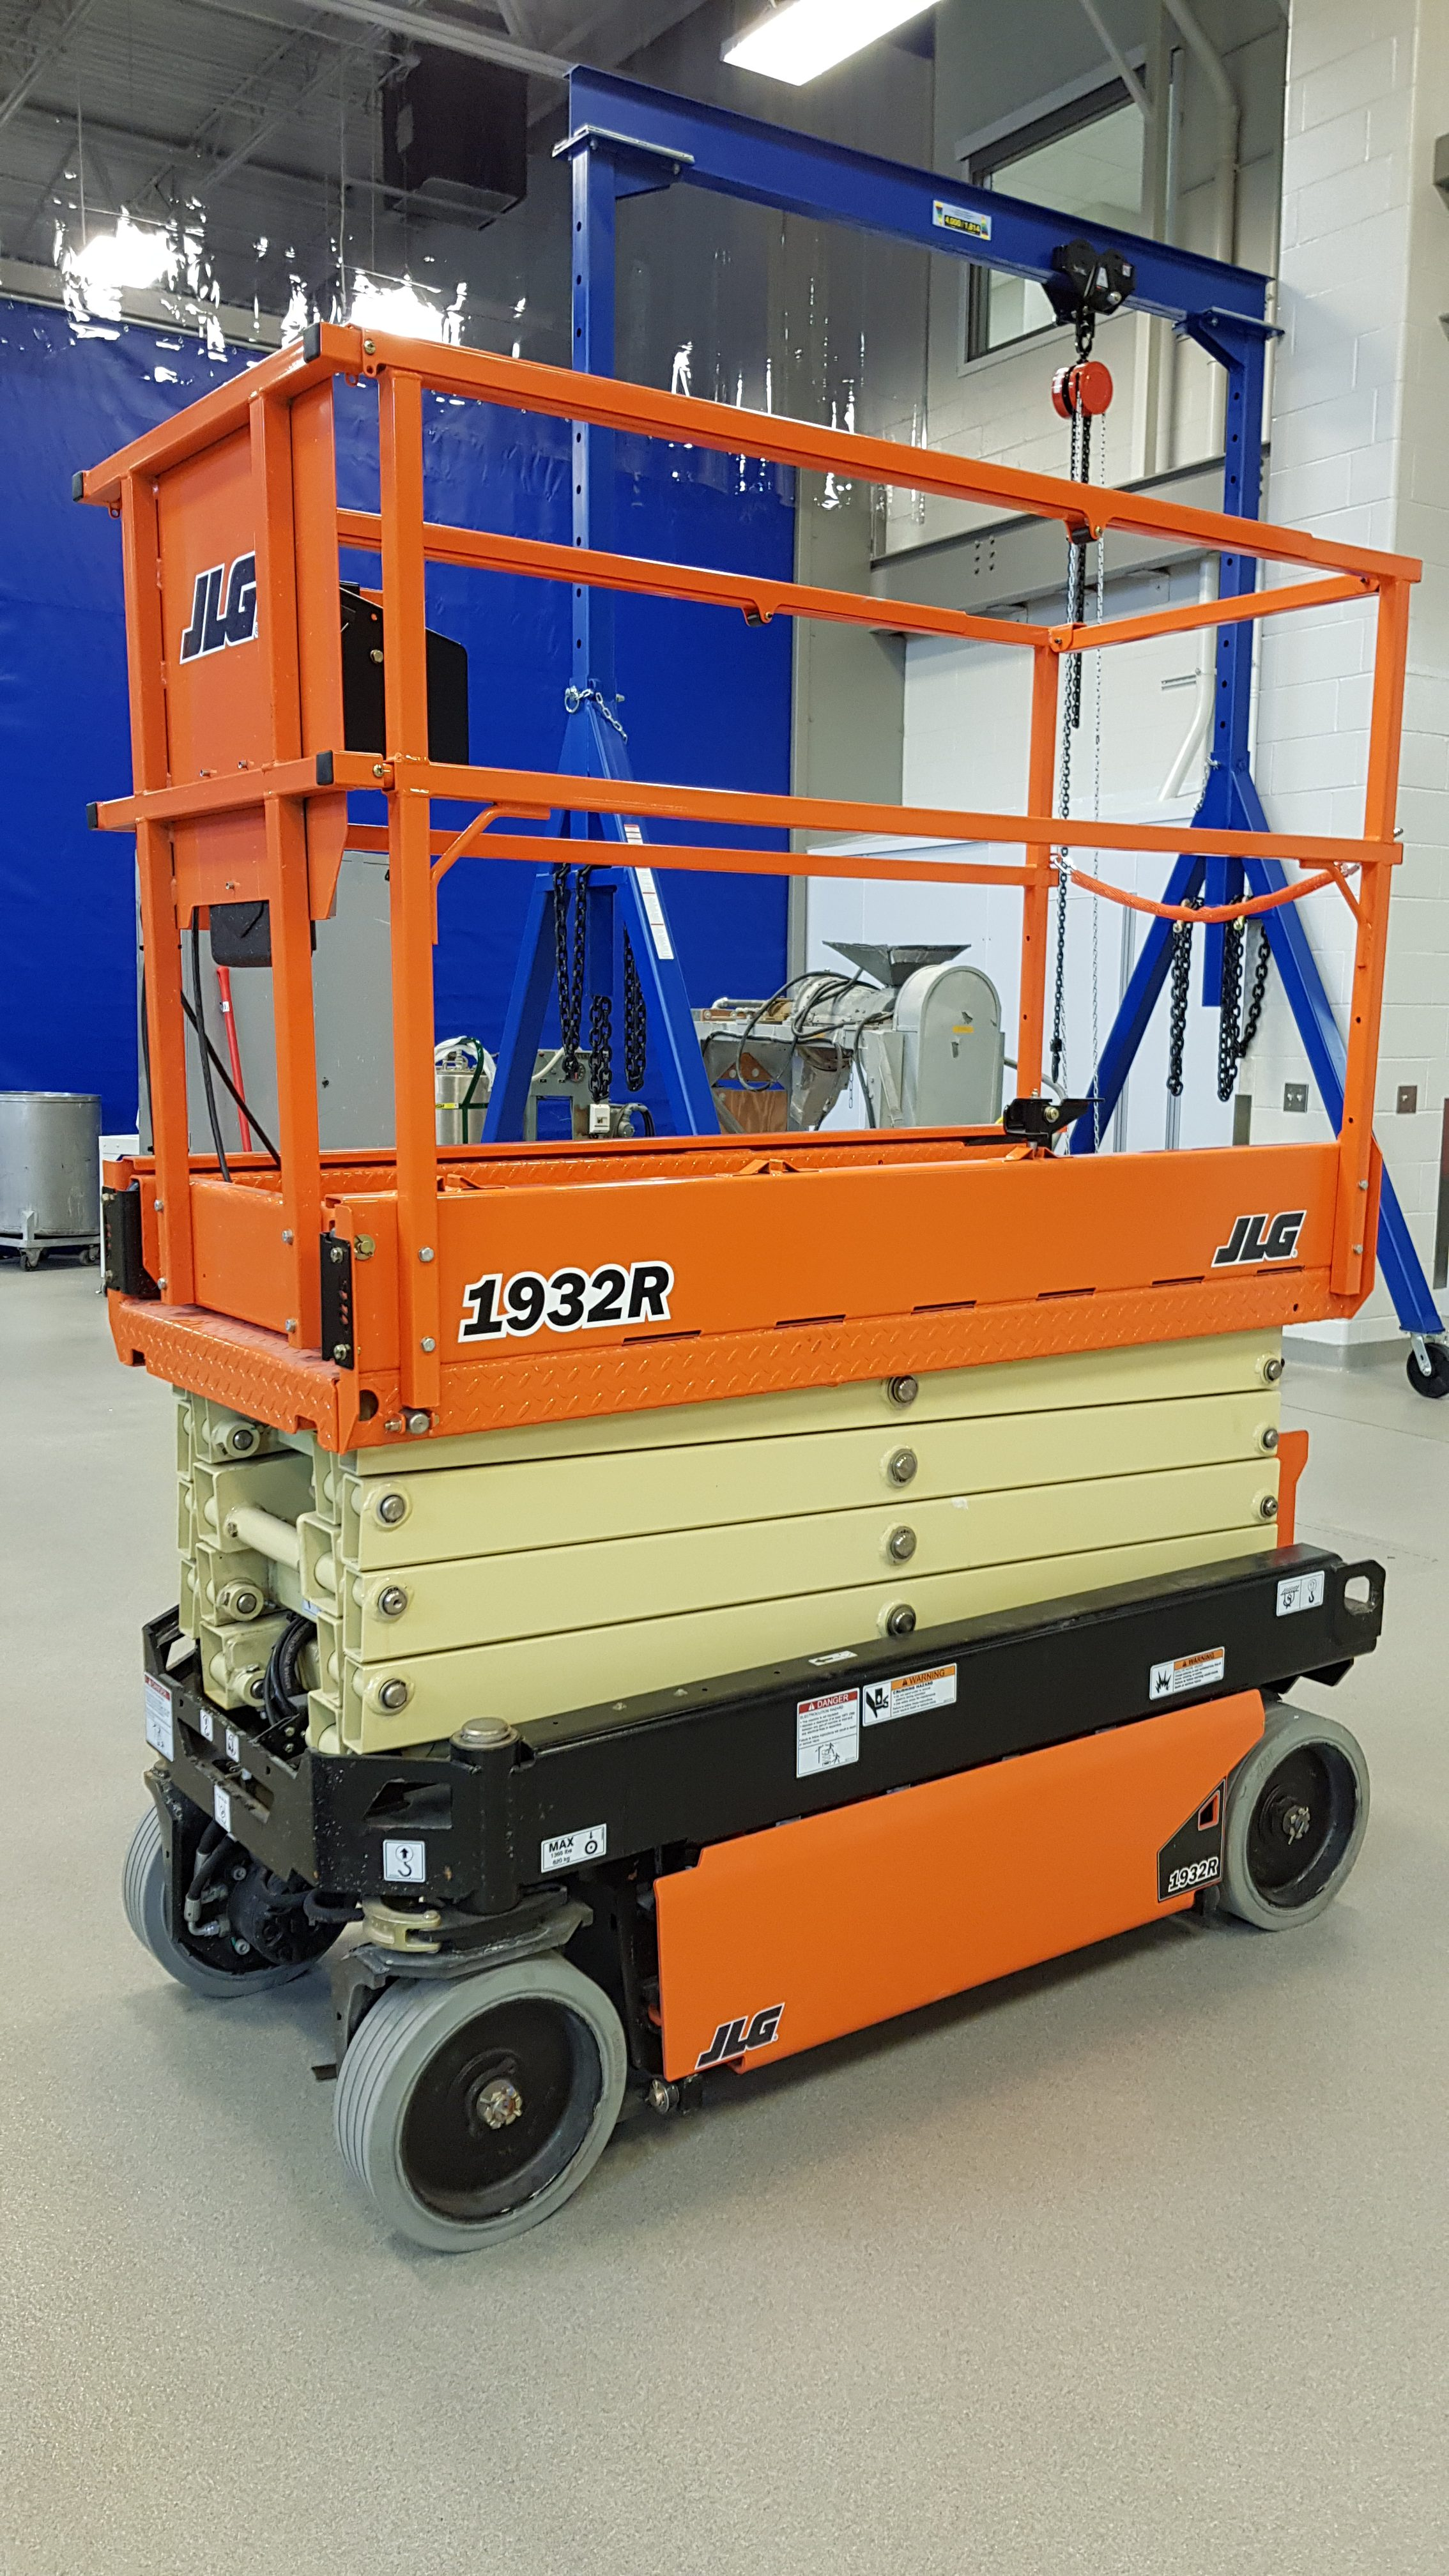 50-003 JLG 2 man Scissor Lift